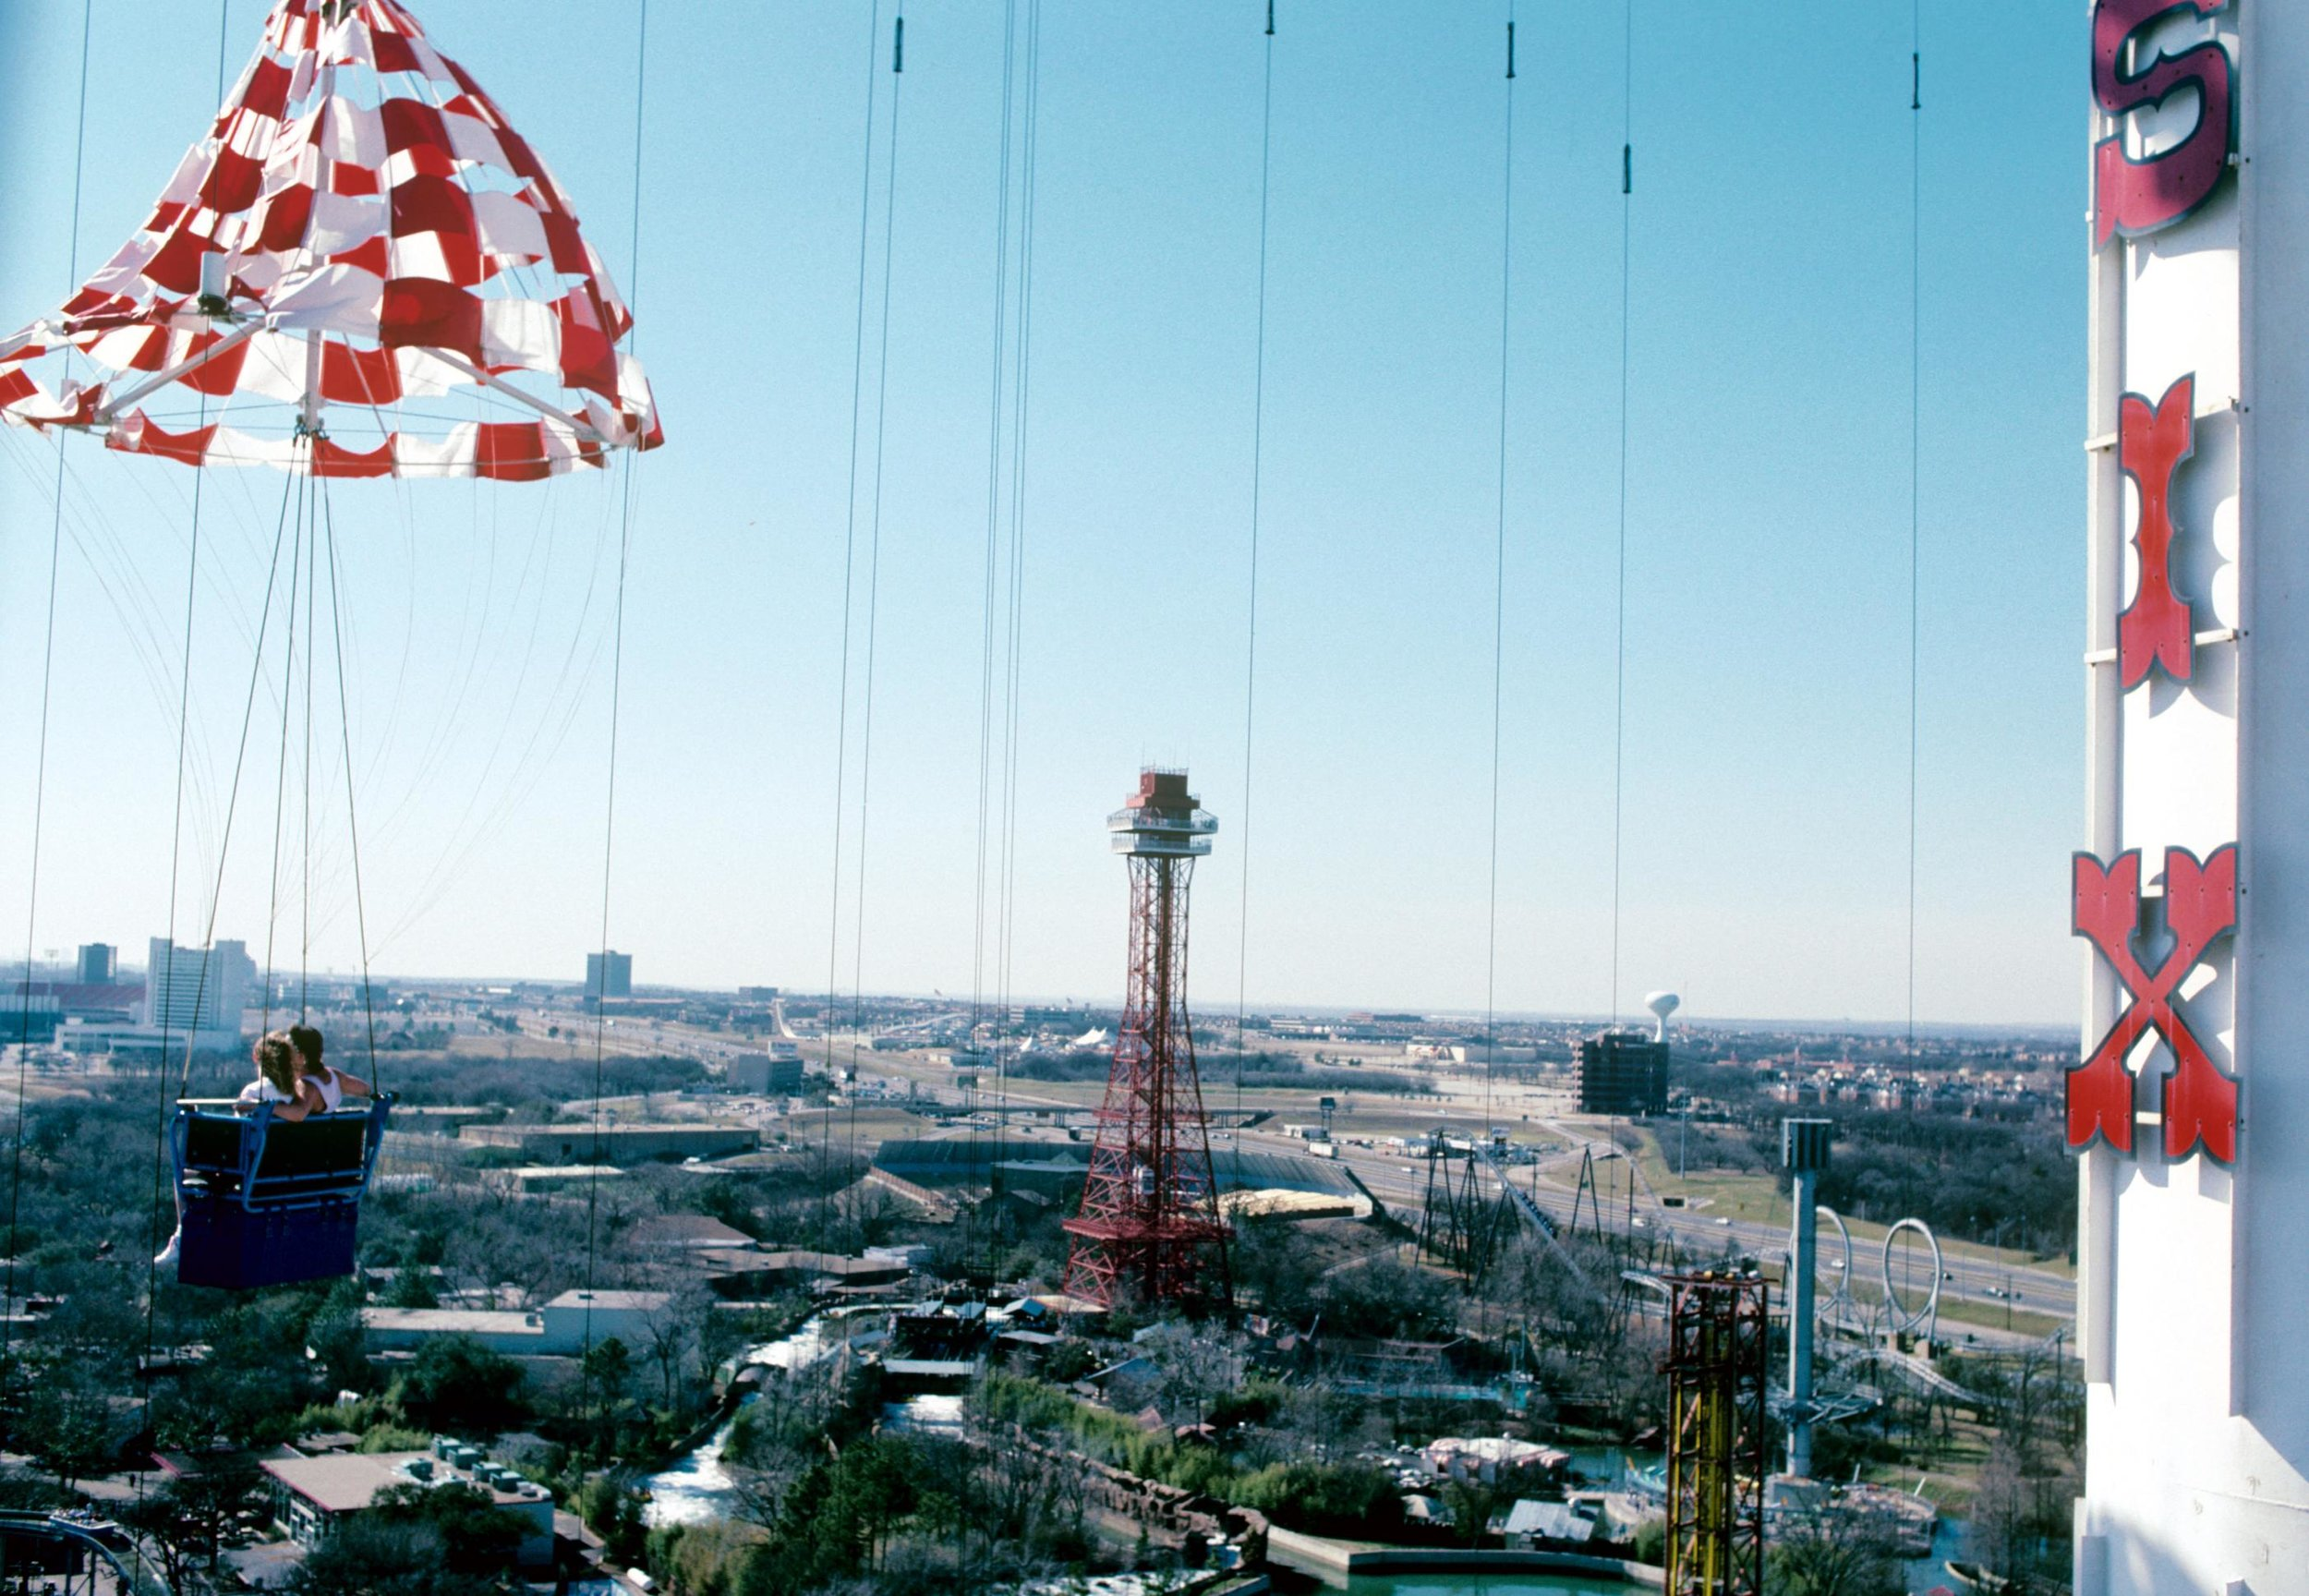 A look at Six Flags Over Texas from Texas Chute Out during the 1989 season.